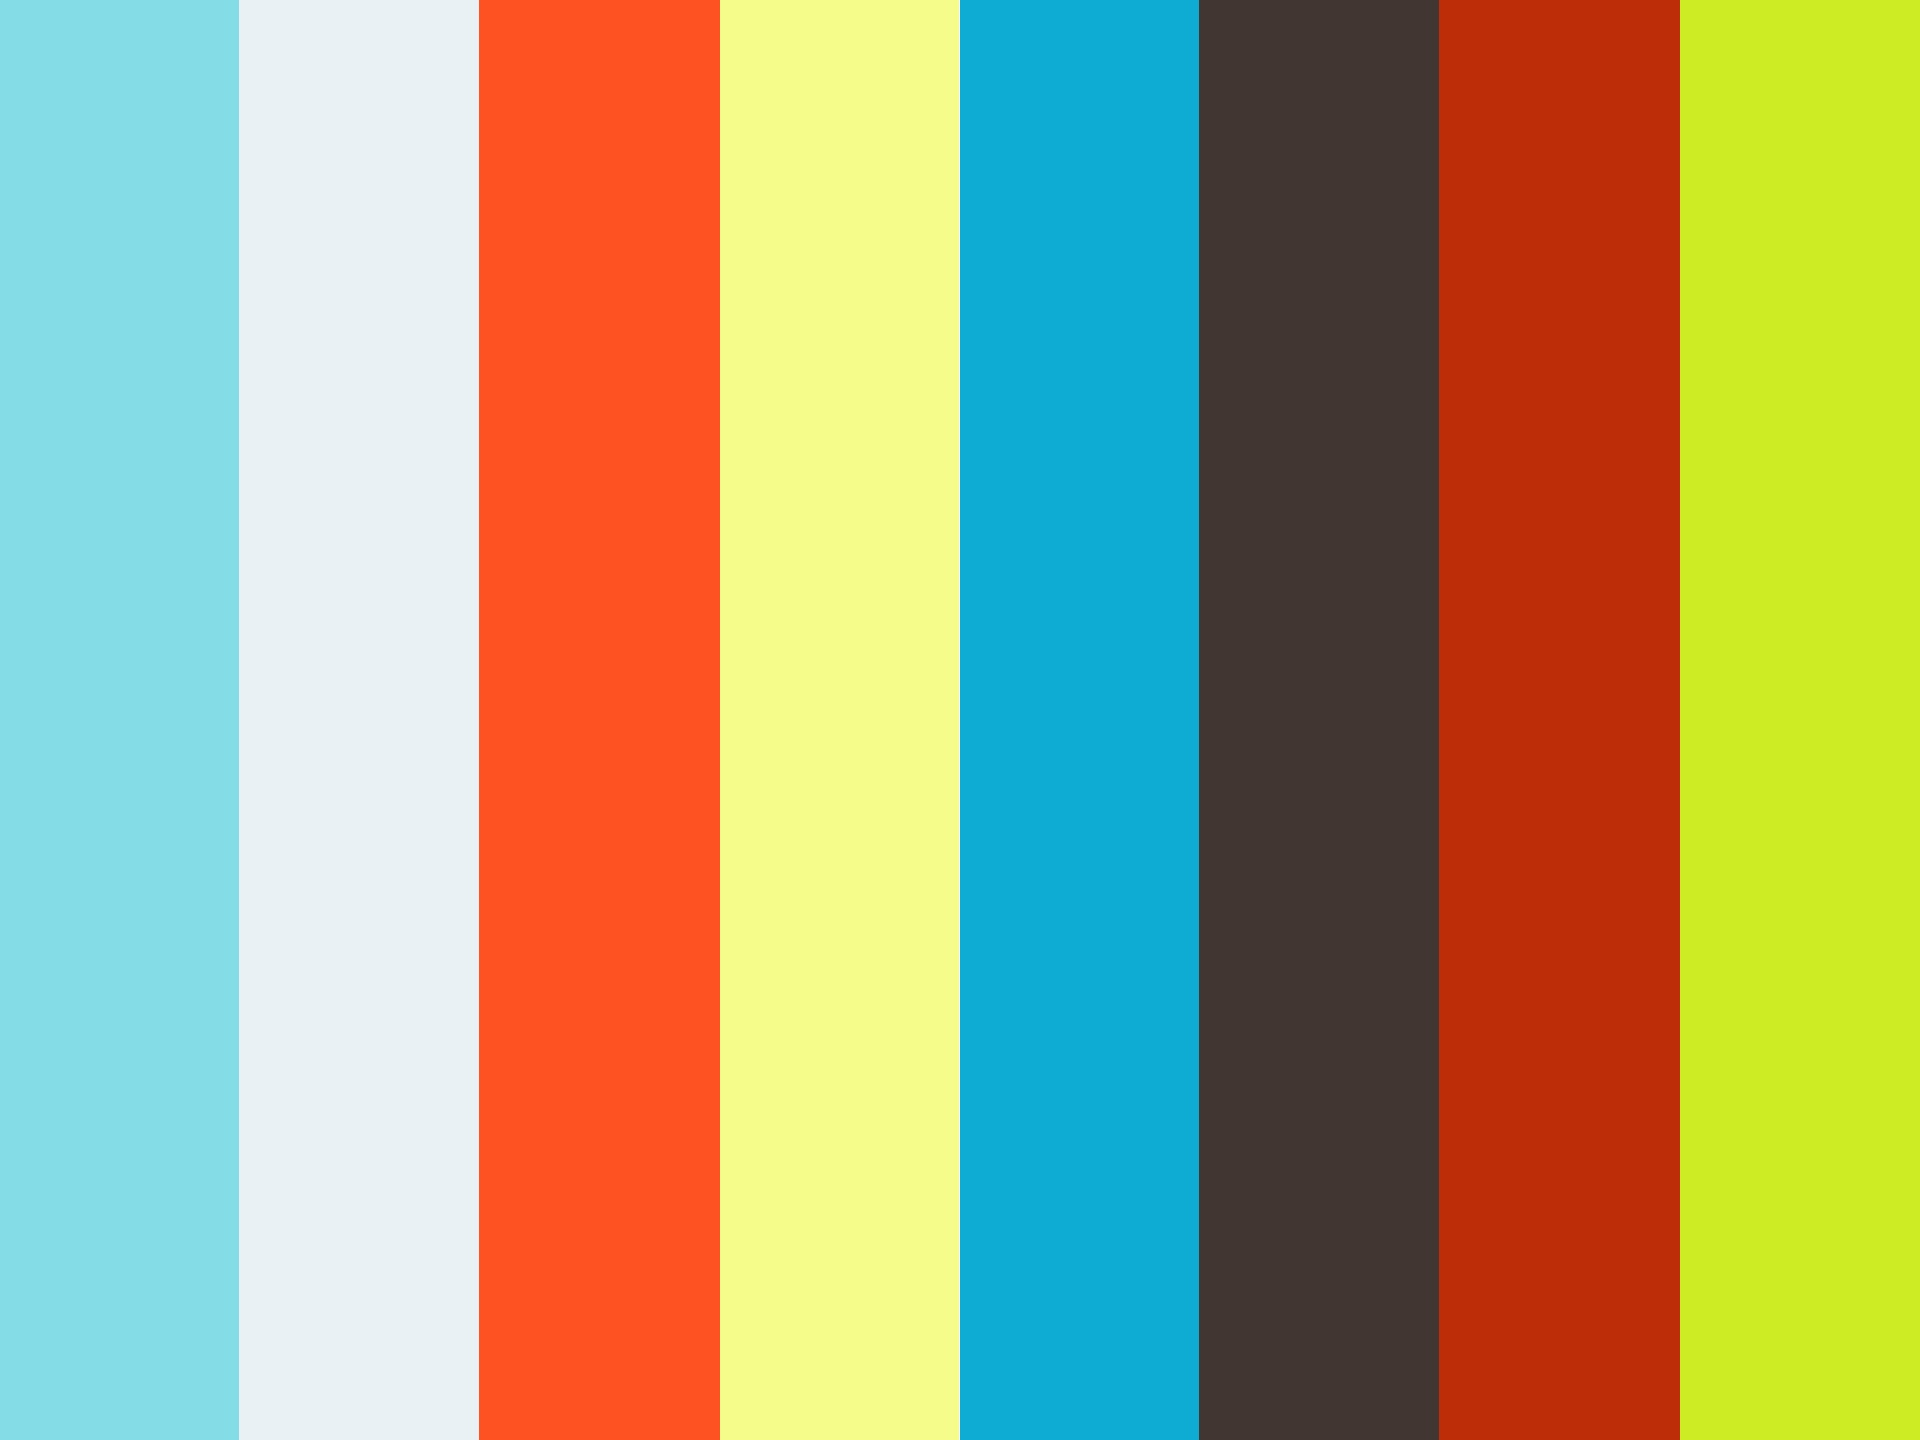 Idles mother single video brutalism album march april tour england scotland wales